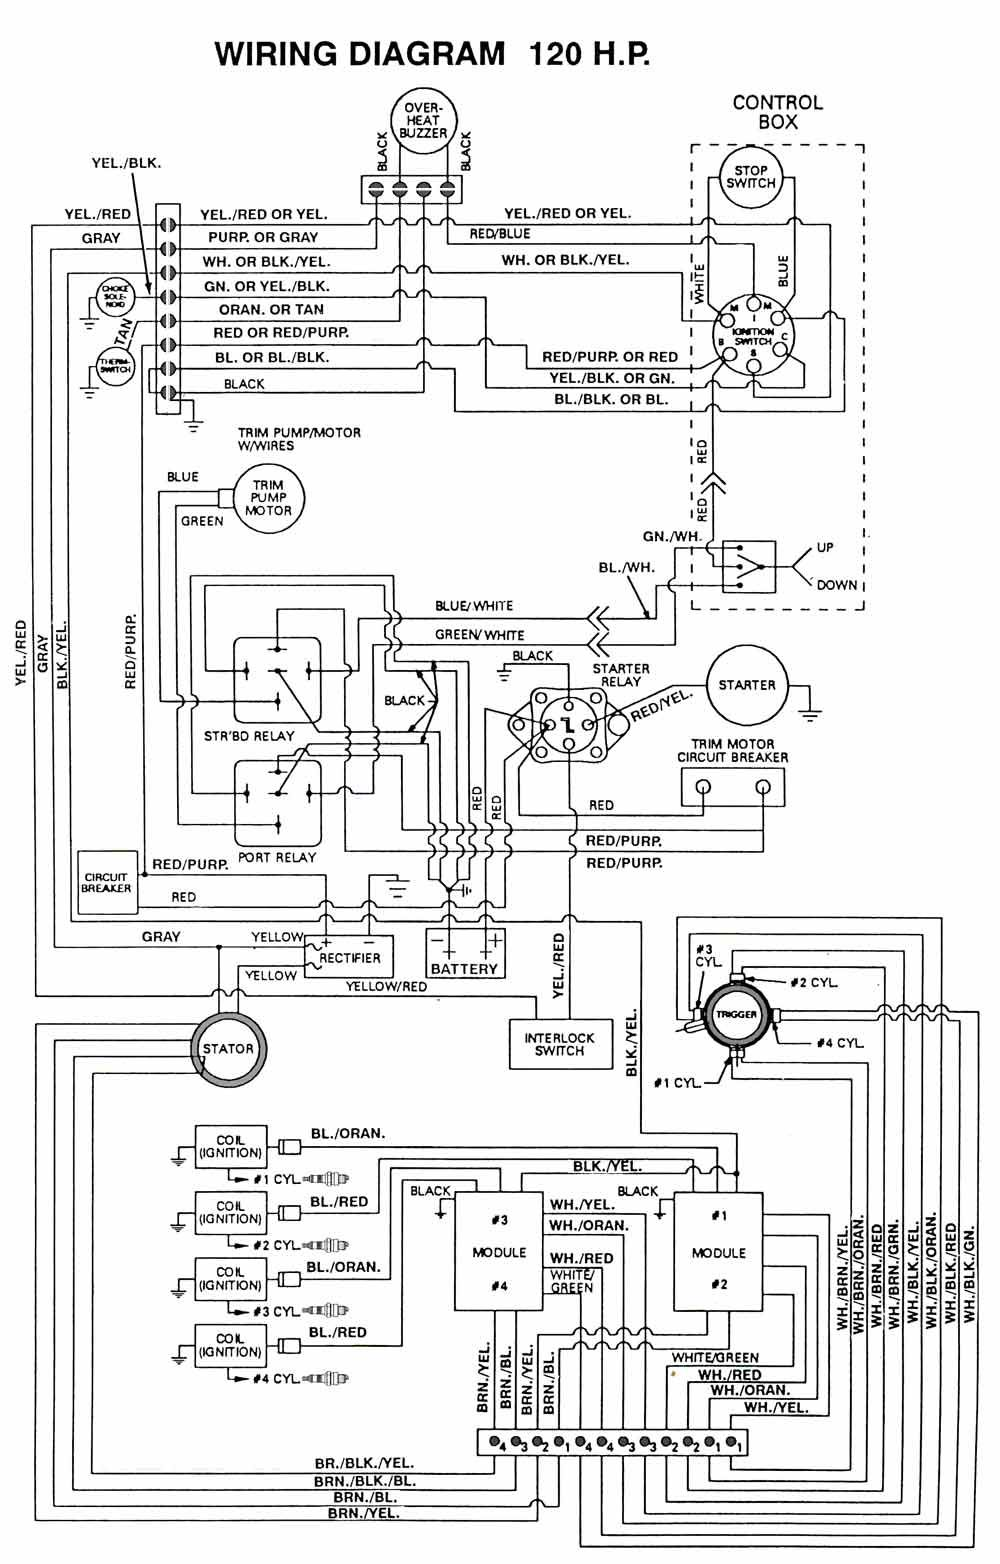 image result for wiring diagram for 1990 mercury force 120 hp outboard motor [ 1000 x 1564 Pixel ]